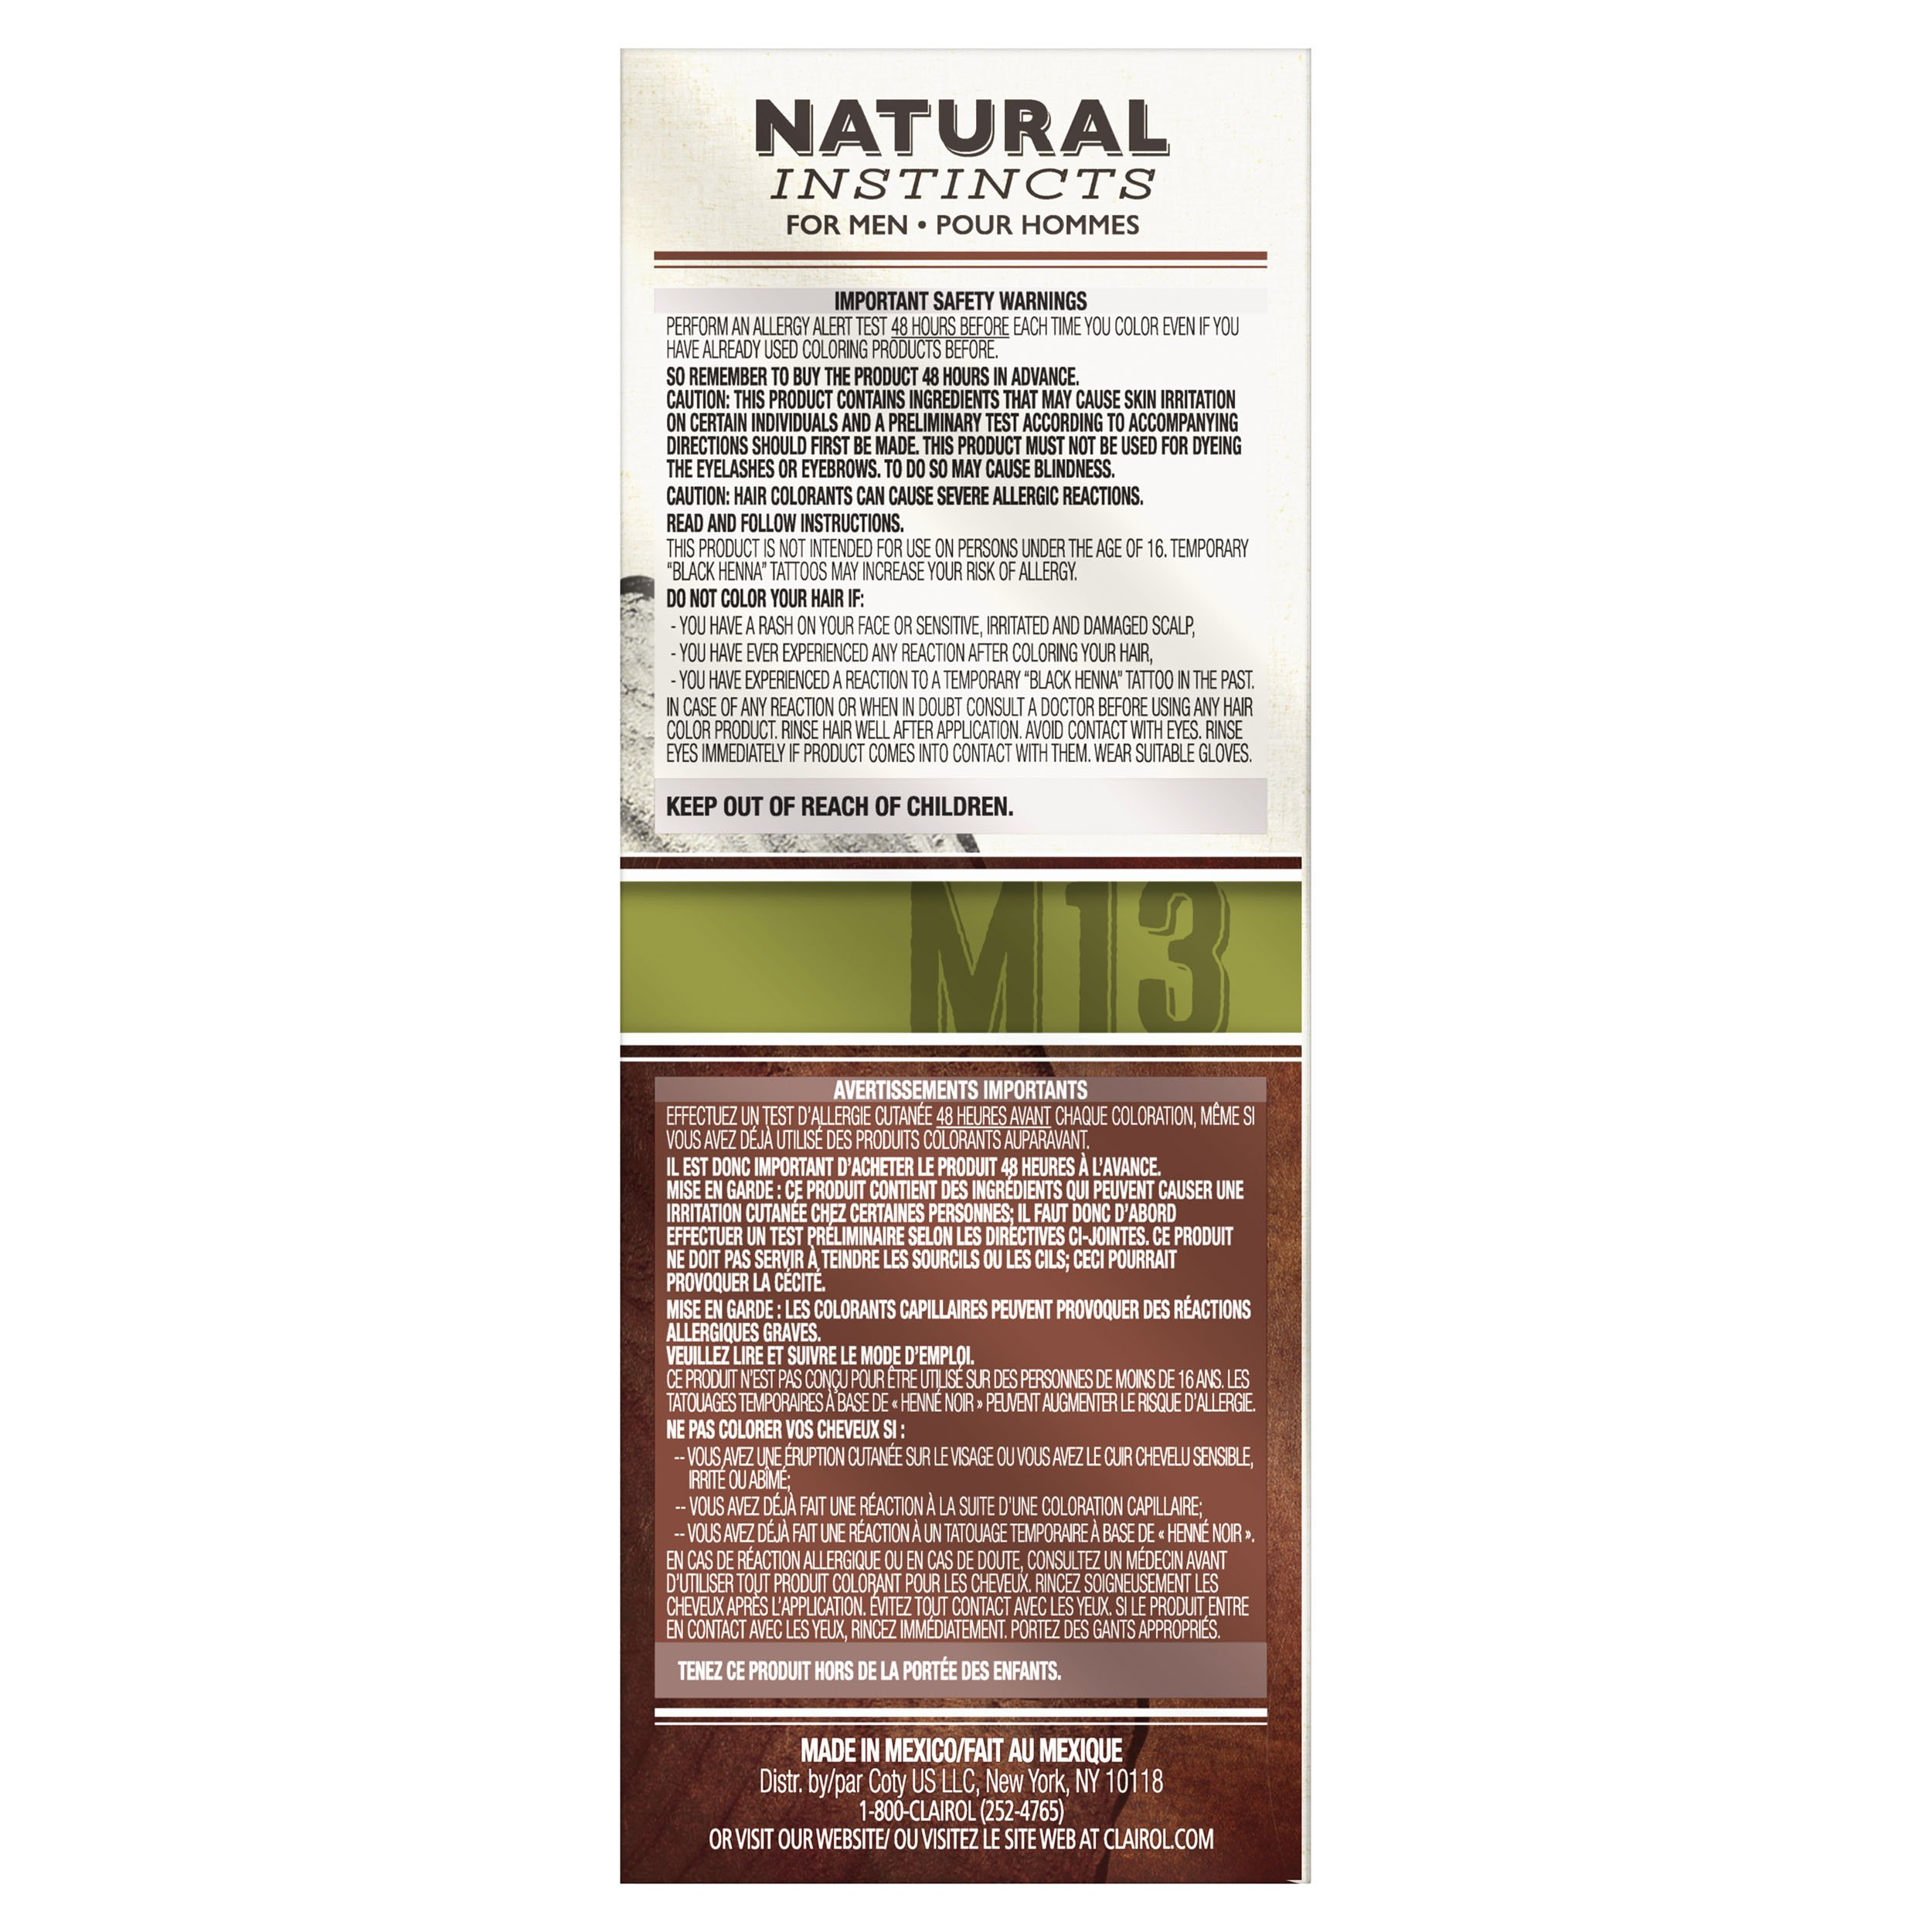 Clairol Natural Instincts Semi-Permanent Hair Color Kit For Men, 3 Pack, M13 Dark Brown Color, Ammonia Free, Long Lasting for 28 Shampoos by Clairol (Image #6)